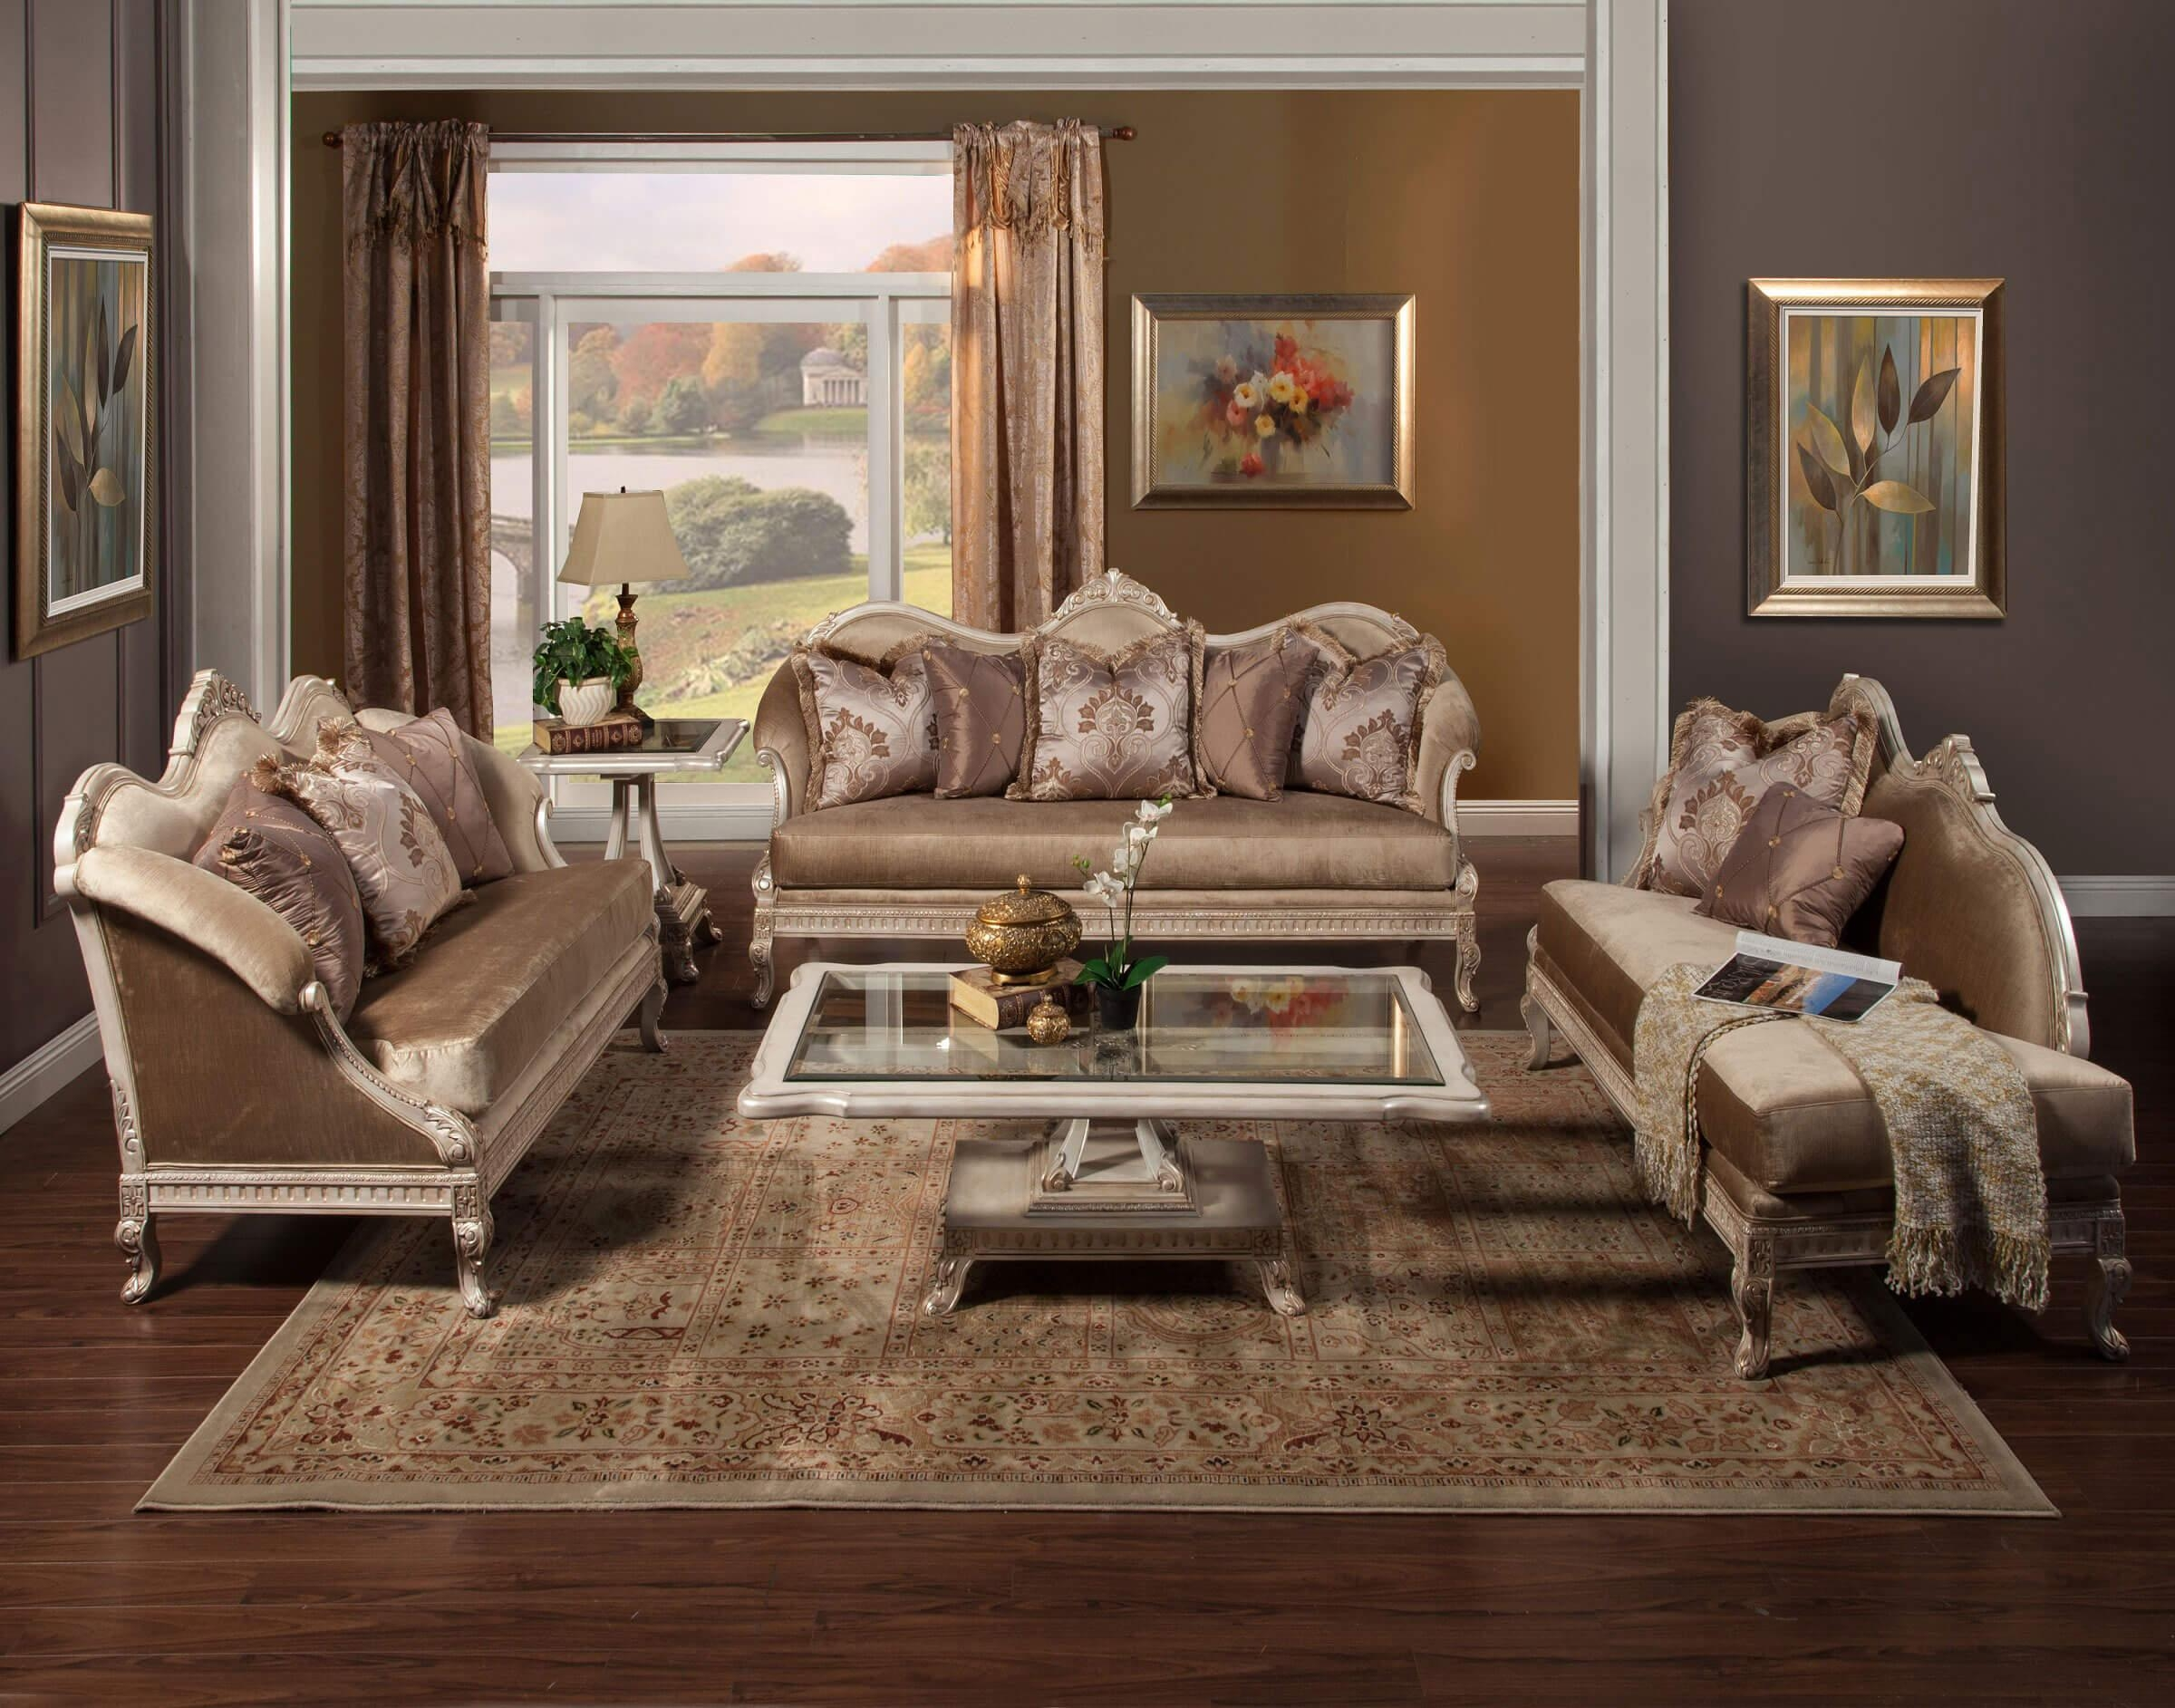 Perla Wood Trim Sofa & Chaise Lounge Set • Usa Furniture Online Pertaining To Sofas And Chaises Lounge Sets (View 6 of 20)